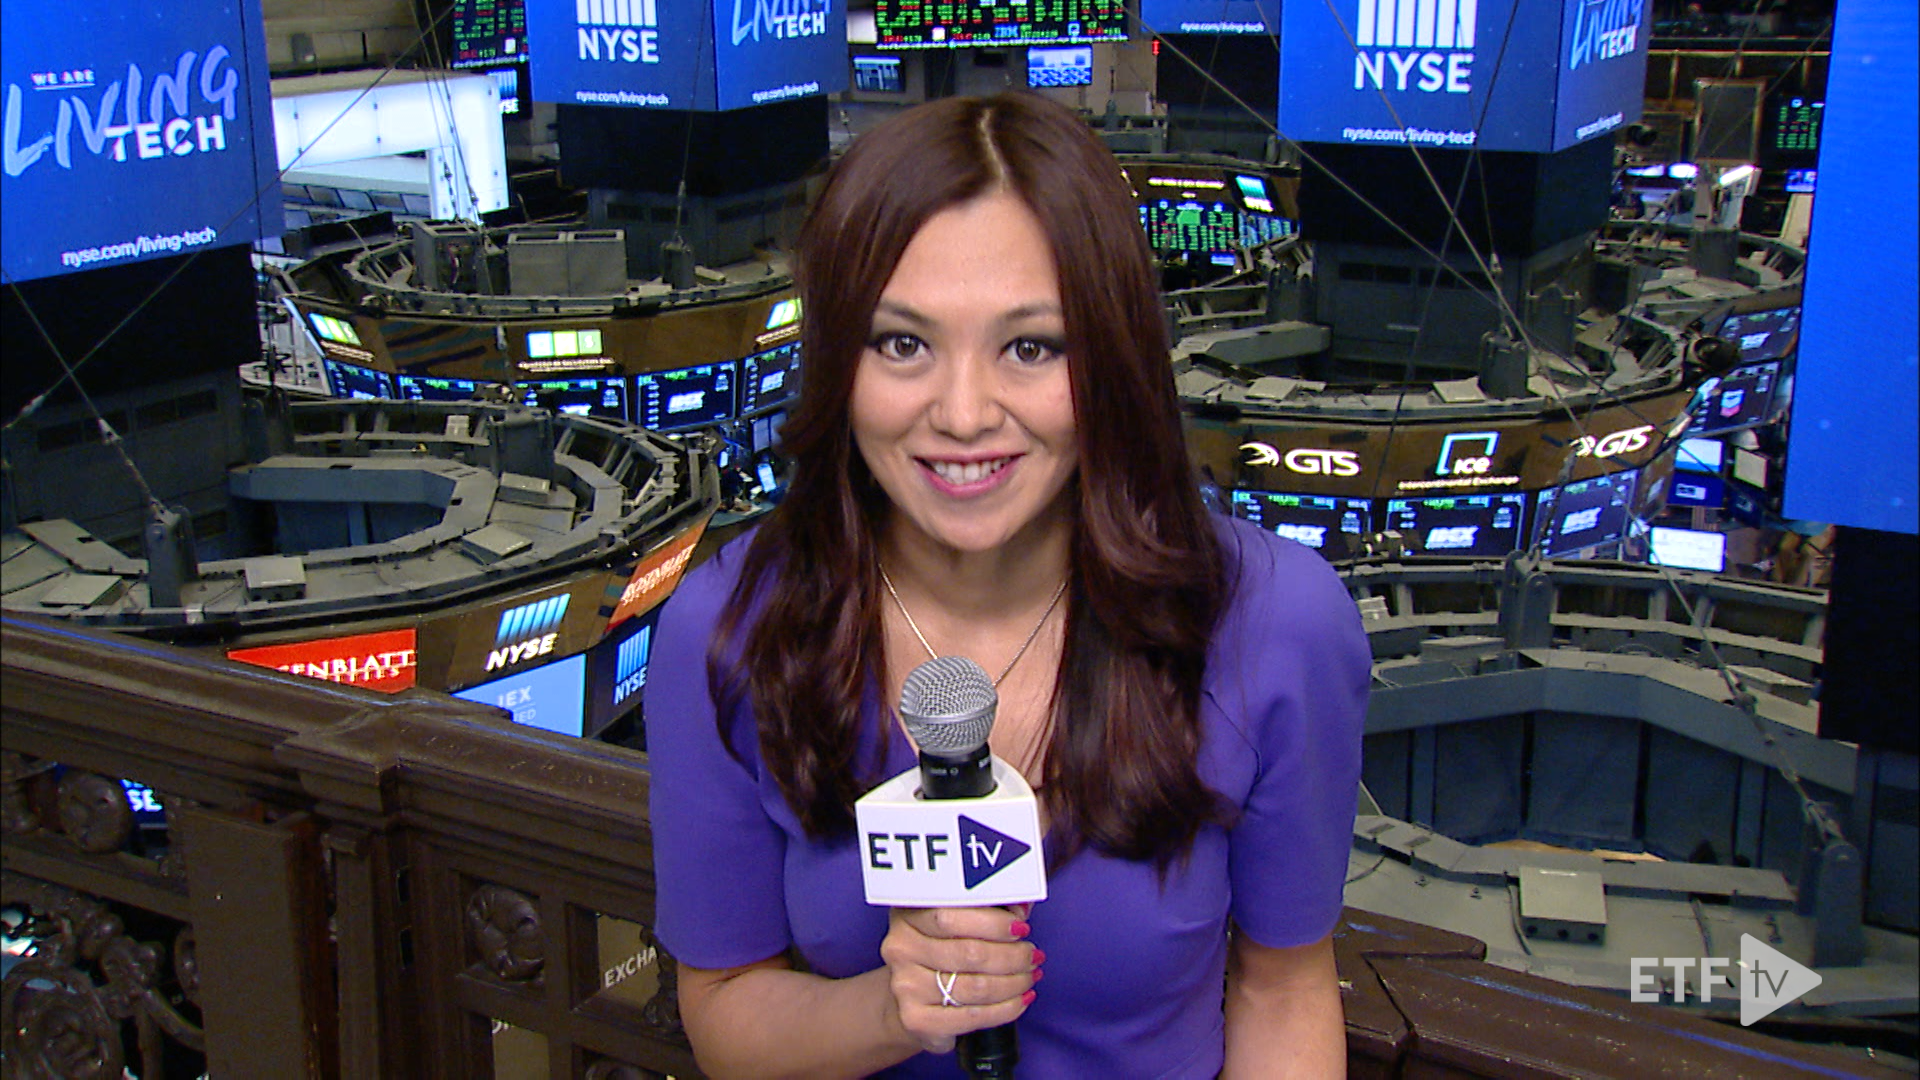 The ETF Show - Trade War Protection